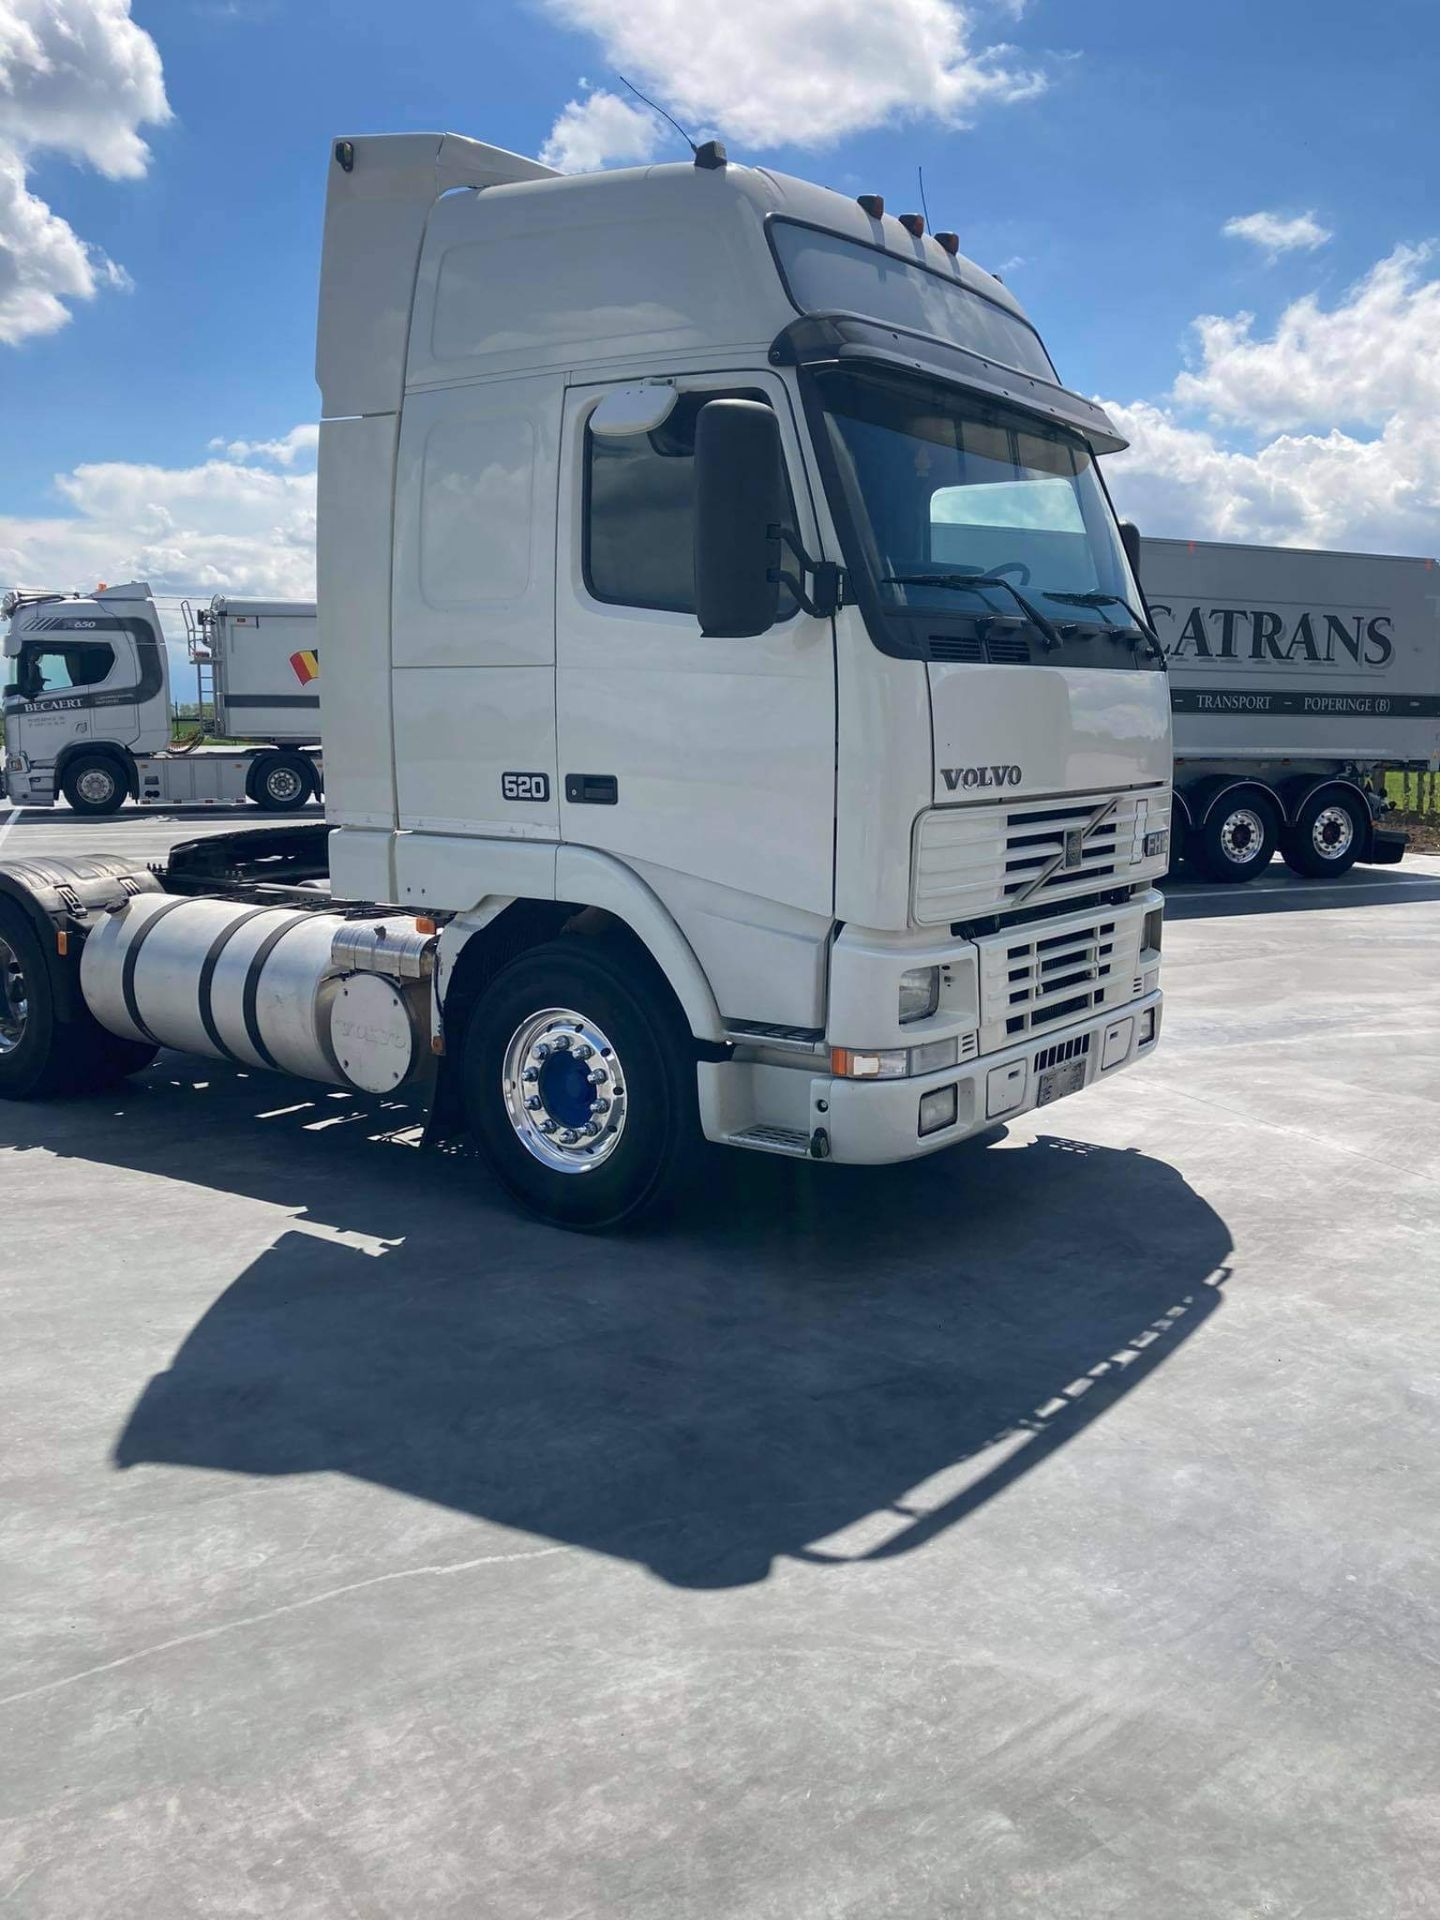 Volvo FH16 VERSION 1 4X2 TRACTOR UNIT, 2000, (Ex Italy) left hand drive, original condition ( - Image 2 of 12